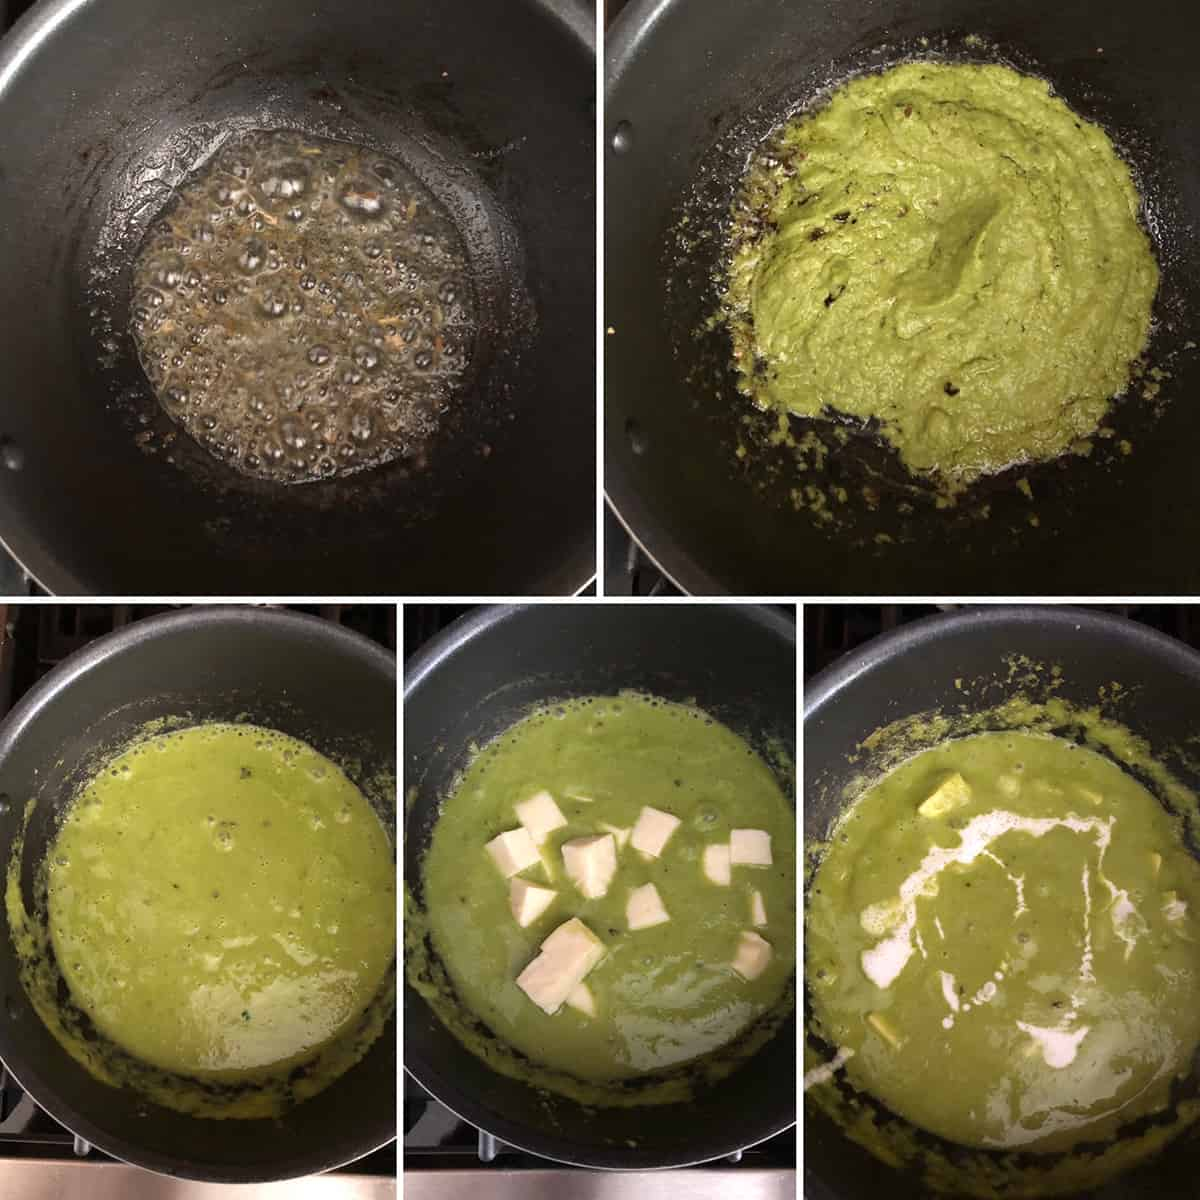 Photos showing the green spice paste cooking in butter